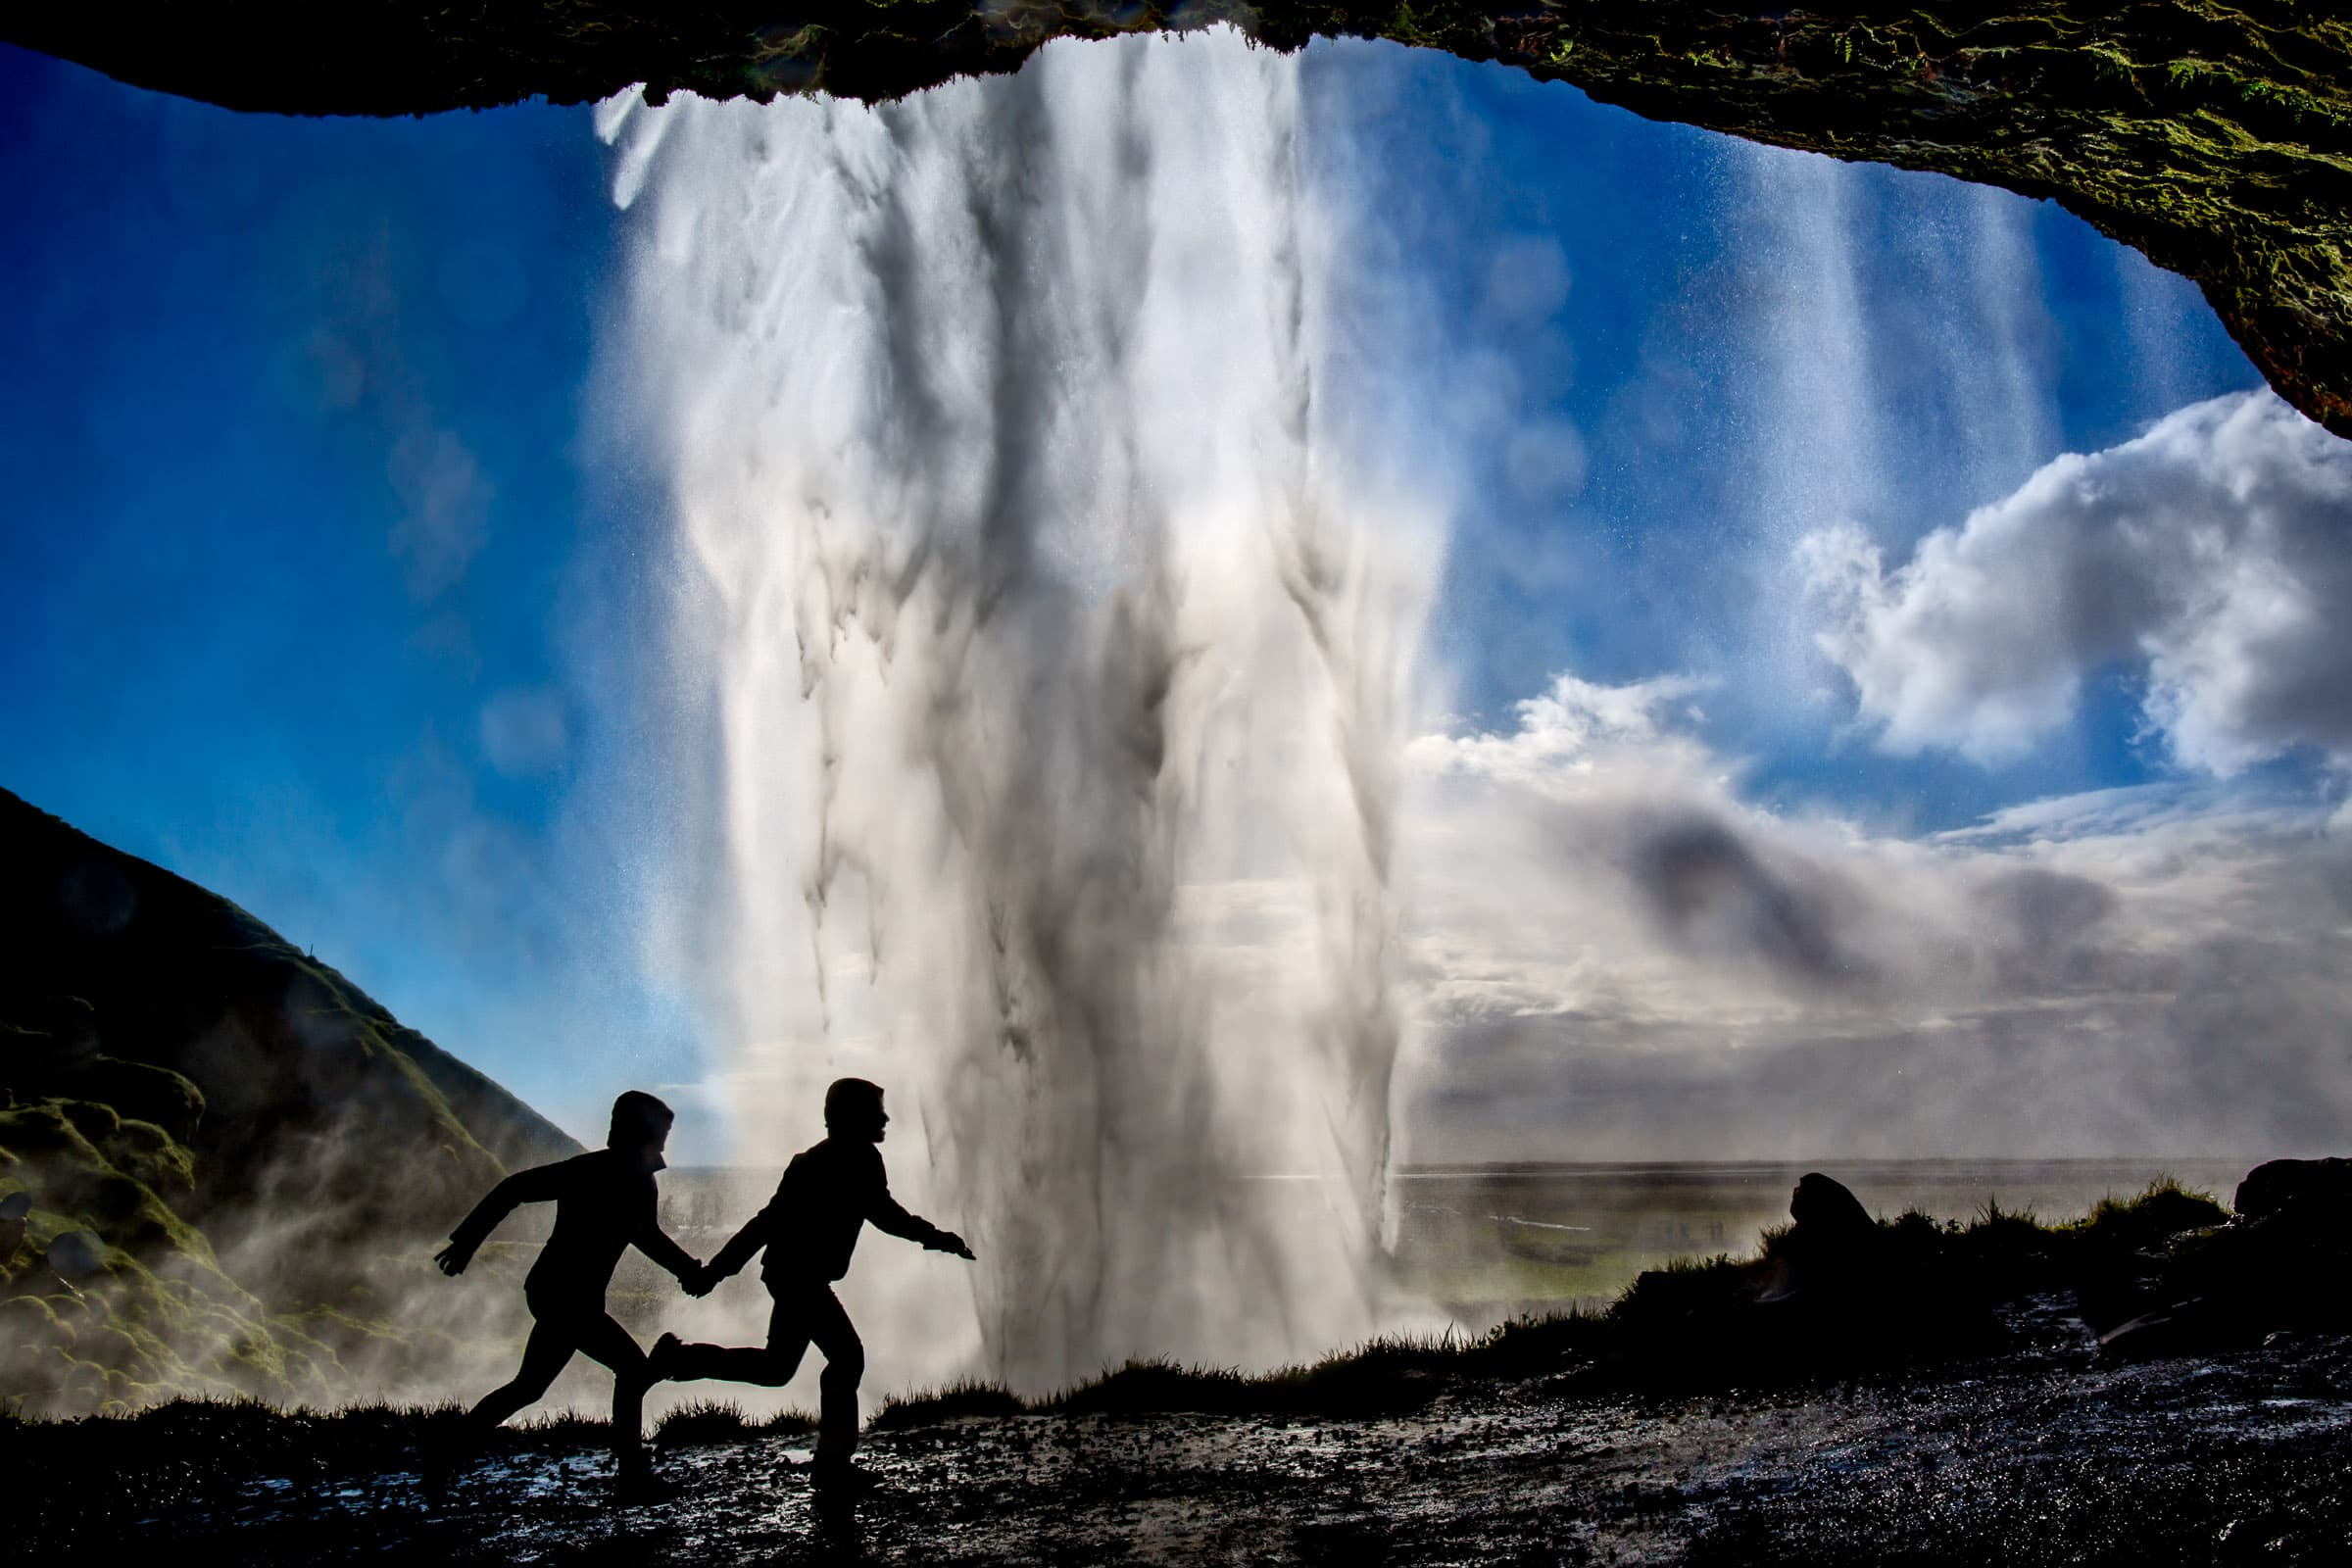 A brilliant photo of an engaged couple running hand and hand under a massive waterfall in Iceland illustrating Jos and Tree's Iceland engagement photo ideas